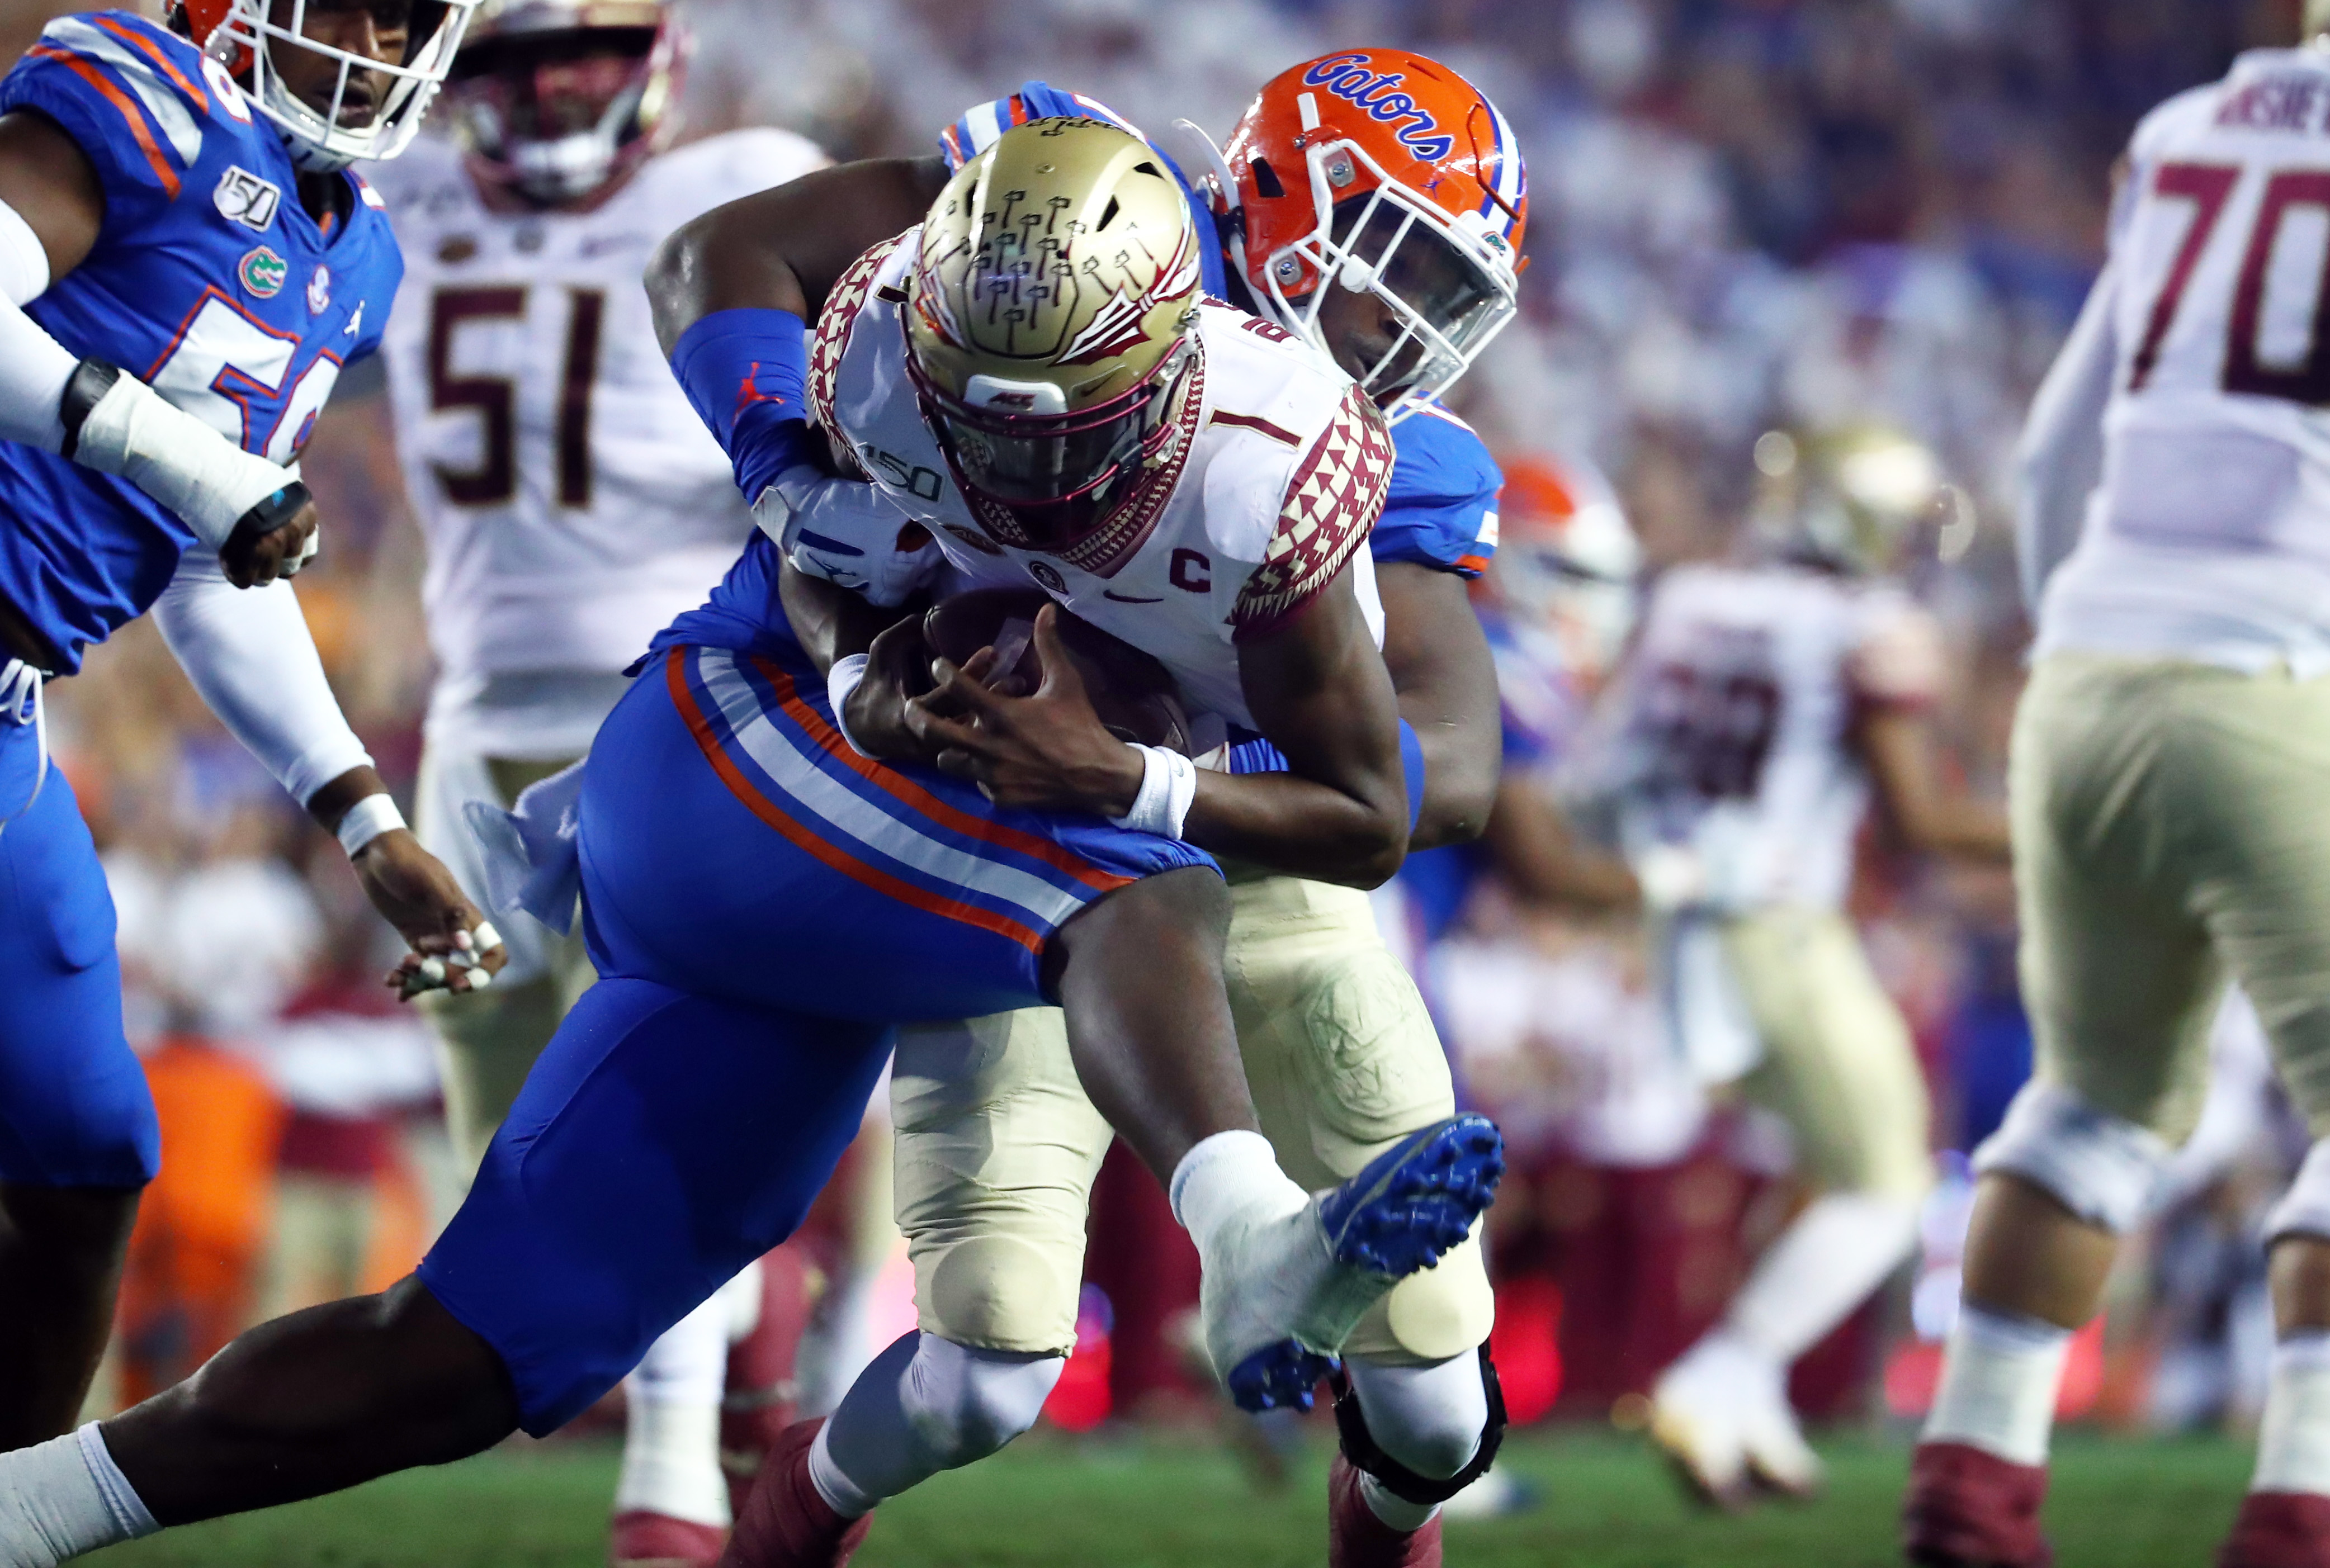 Gators Film Room: The 2019 Breakout Player That No One Is Talking About...